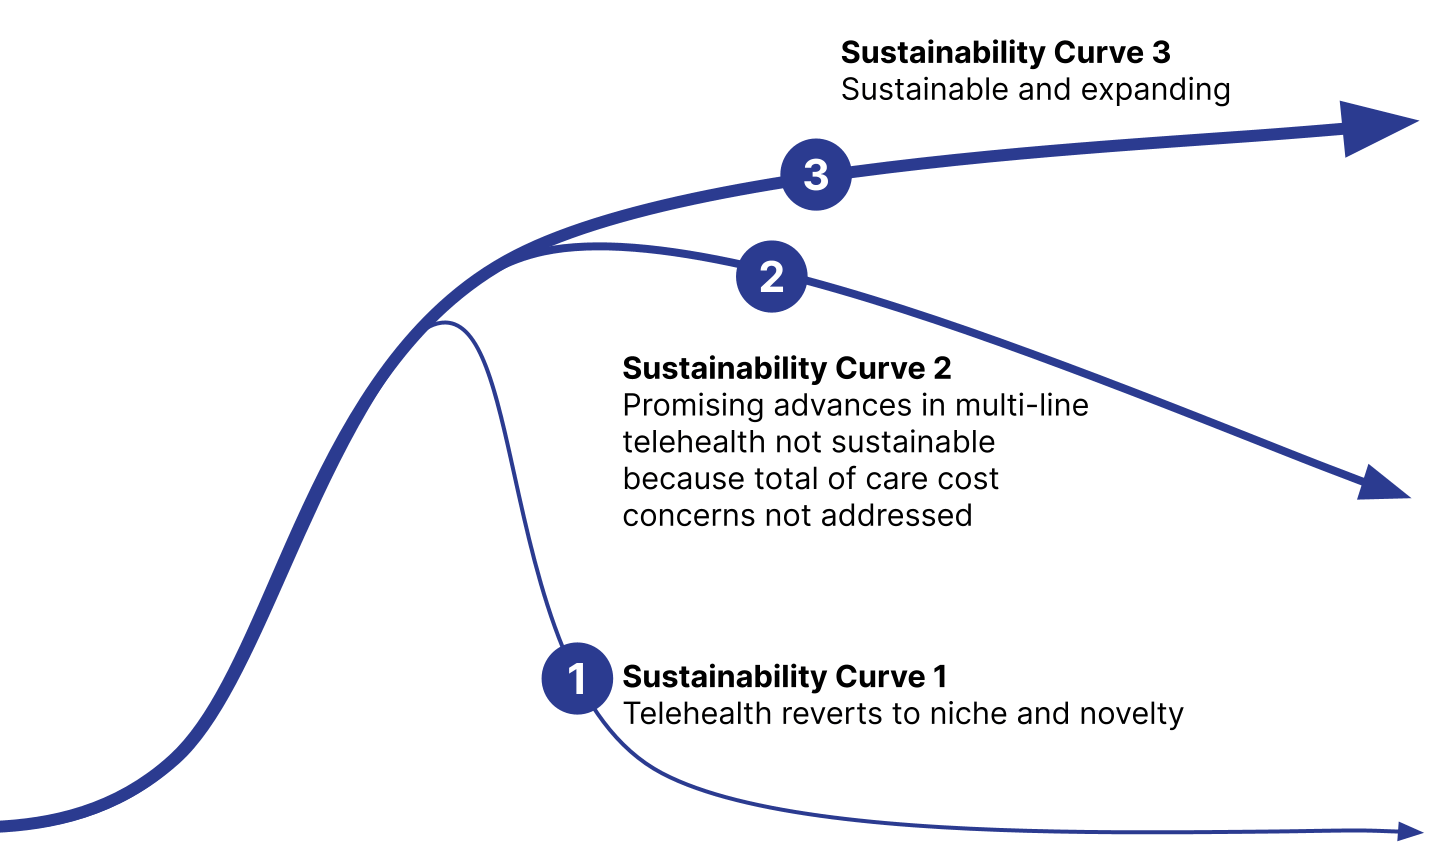 Diagram of Sustainability Curves